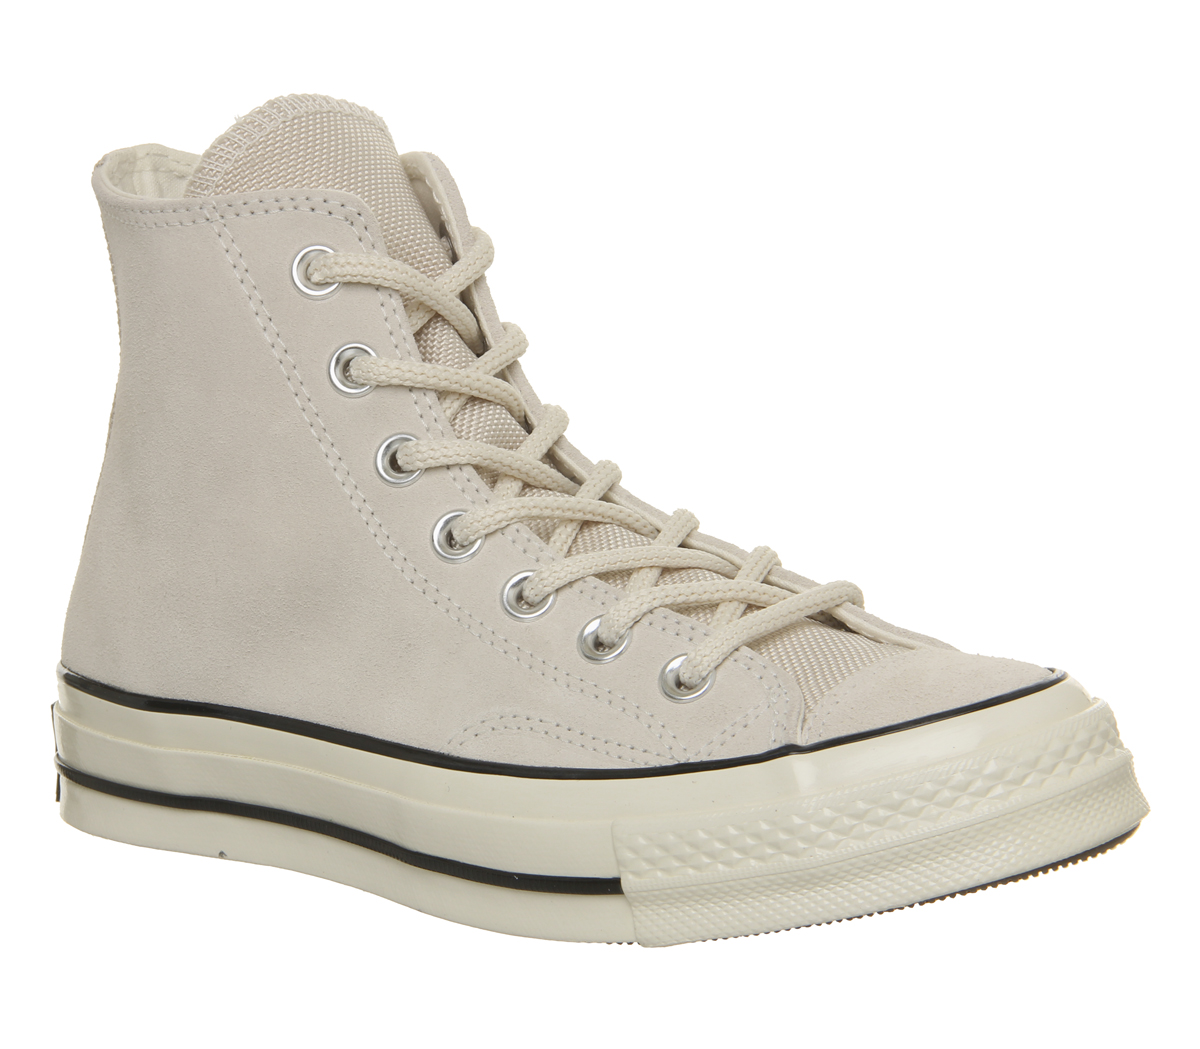 f32af55afb6e Sentinel Mens Converse All Star Hi 70 S Trainers Natural Ivory Black Egret  Trainers Shoes